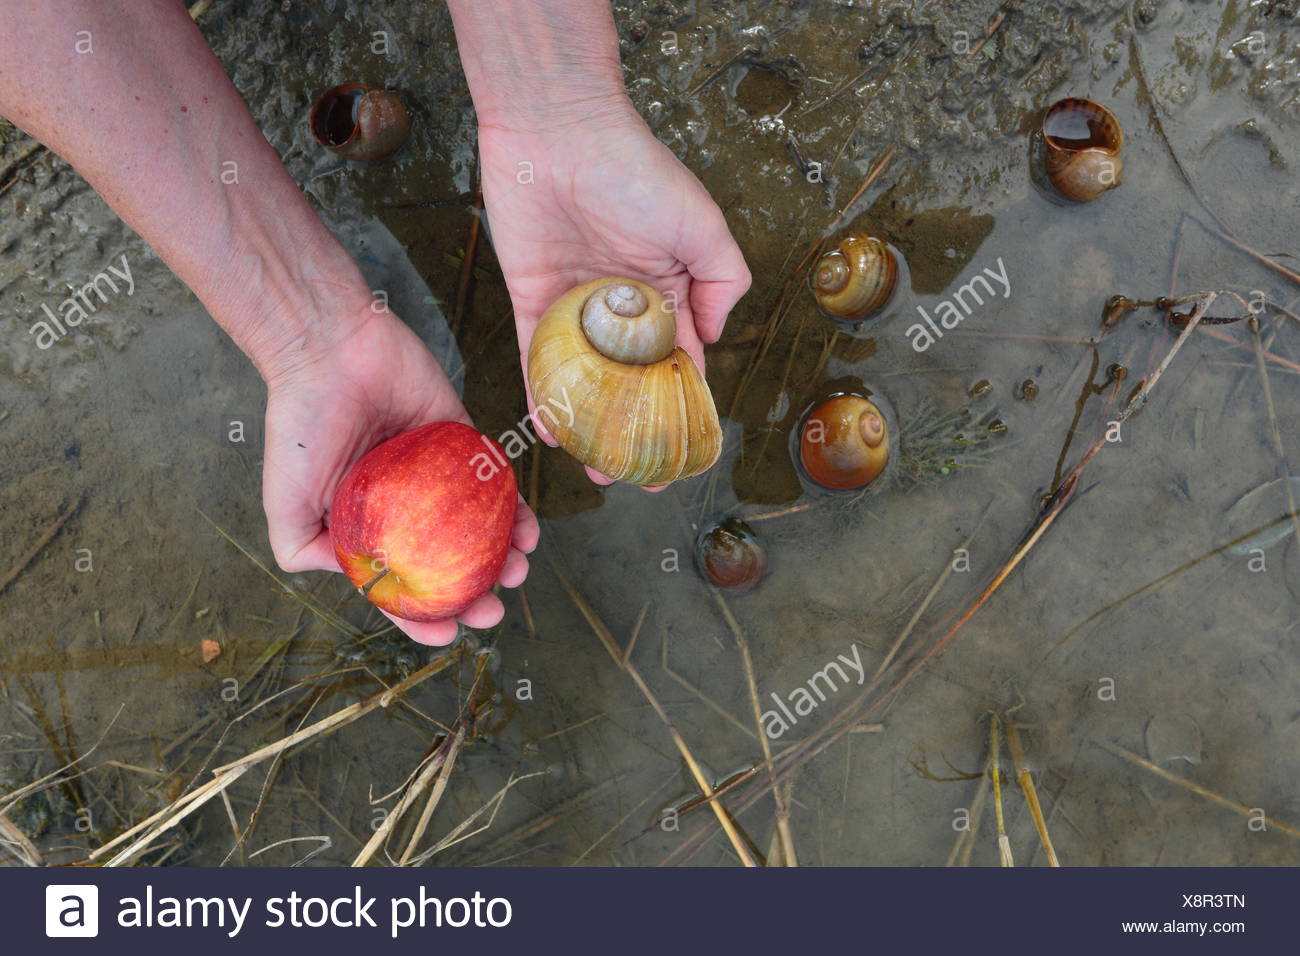 A comparison between an apple snail, Pomacea paludosa, and an apple. - Stock Image